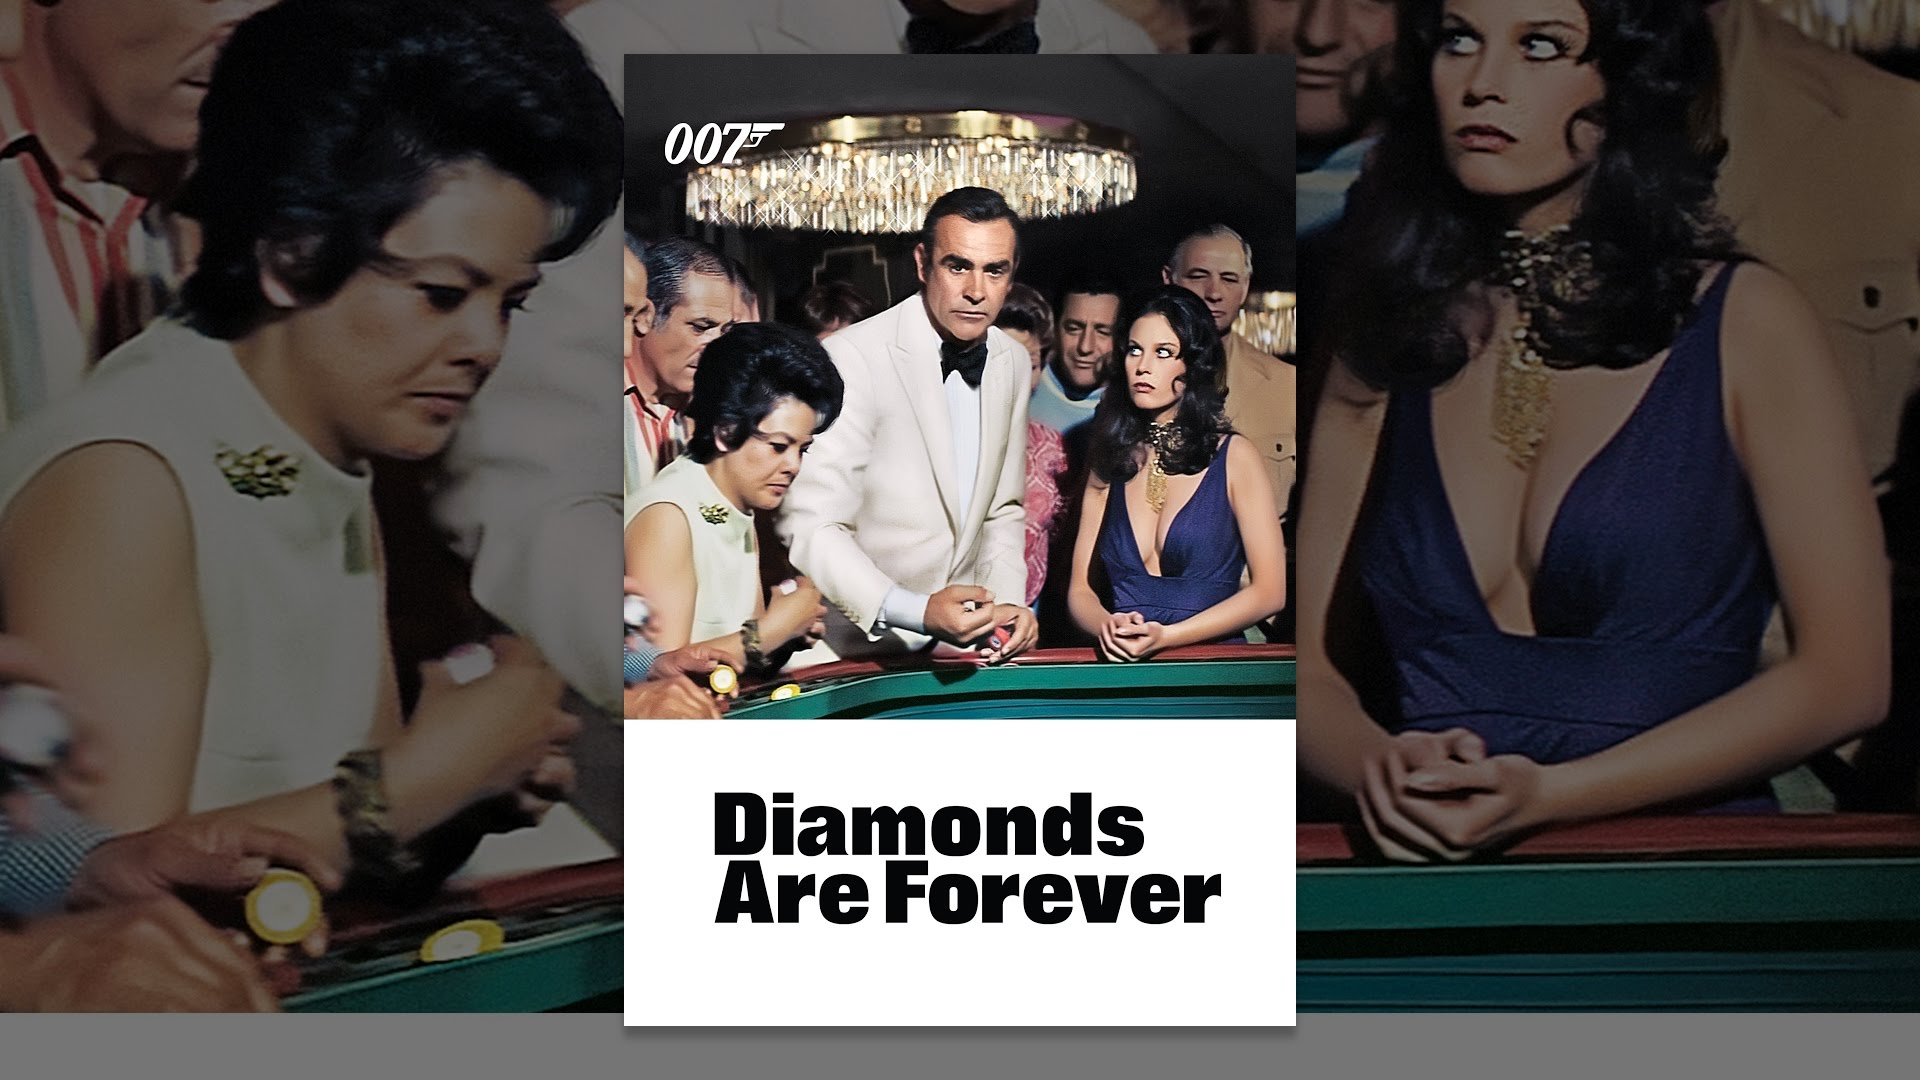 Watch Full movie: Diamonds Are Forever () Online Free.A diamond smuggling investigation leads James Bond to Las Vegas, where he uncovers an extortion plot headed by his nemesis, Ernst Stavro Blofeld stream movies.